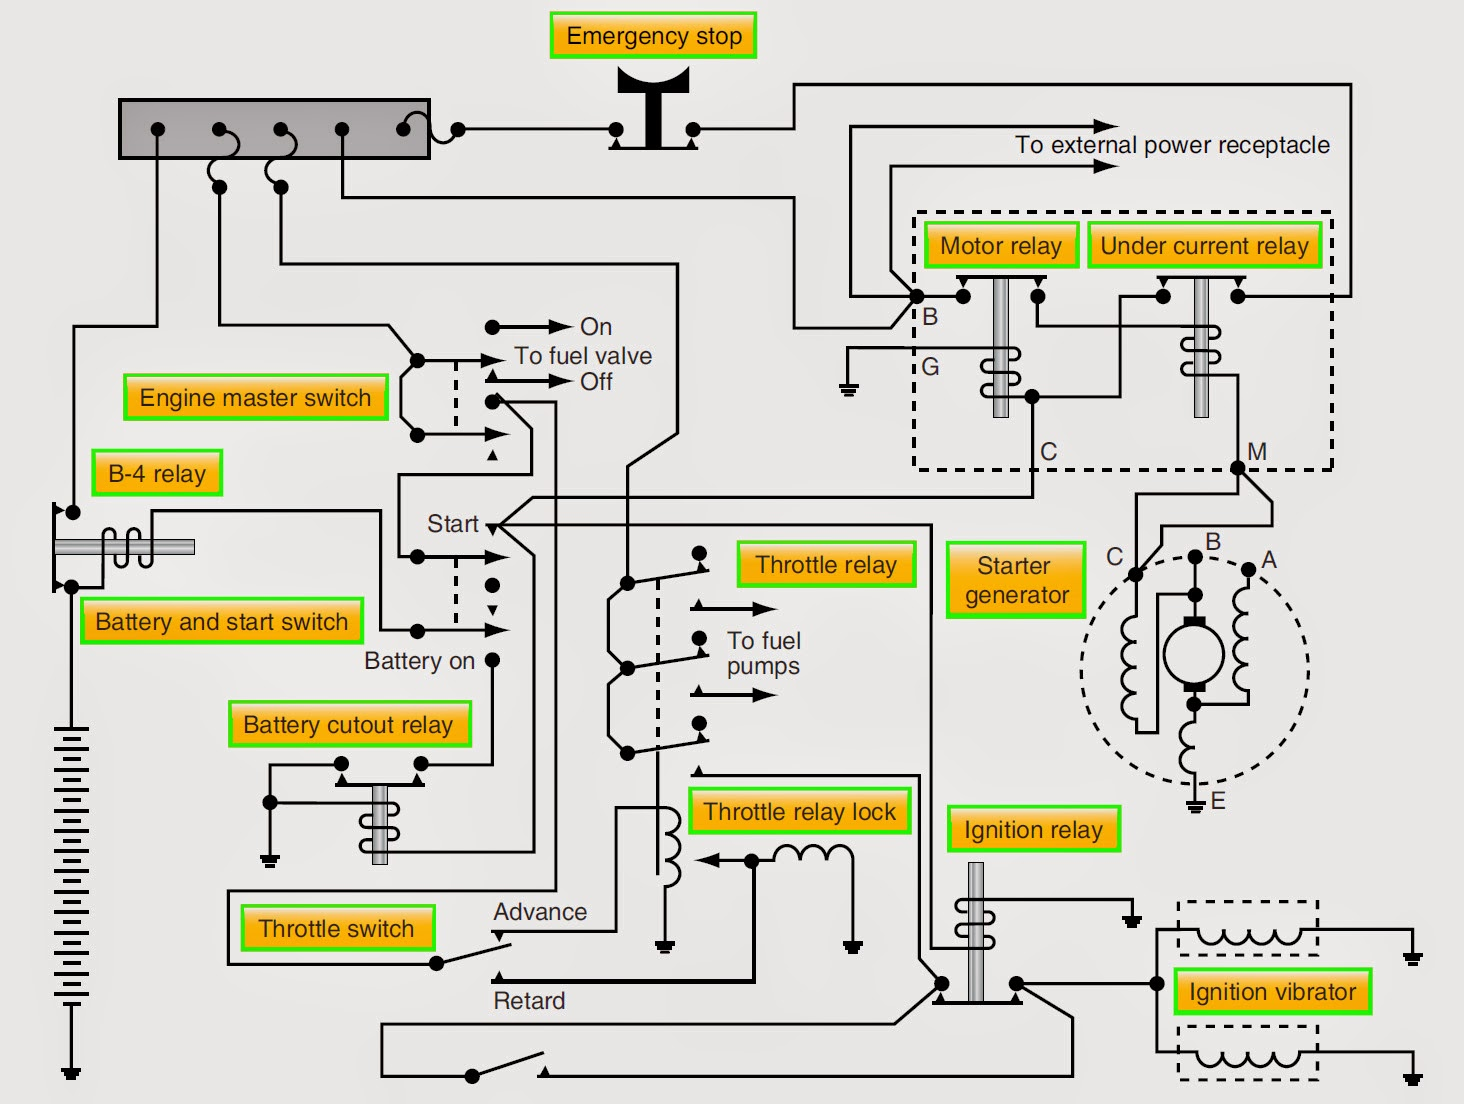 Aircraft systems: Electric Starting Systems and Starter Generator Starting System